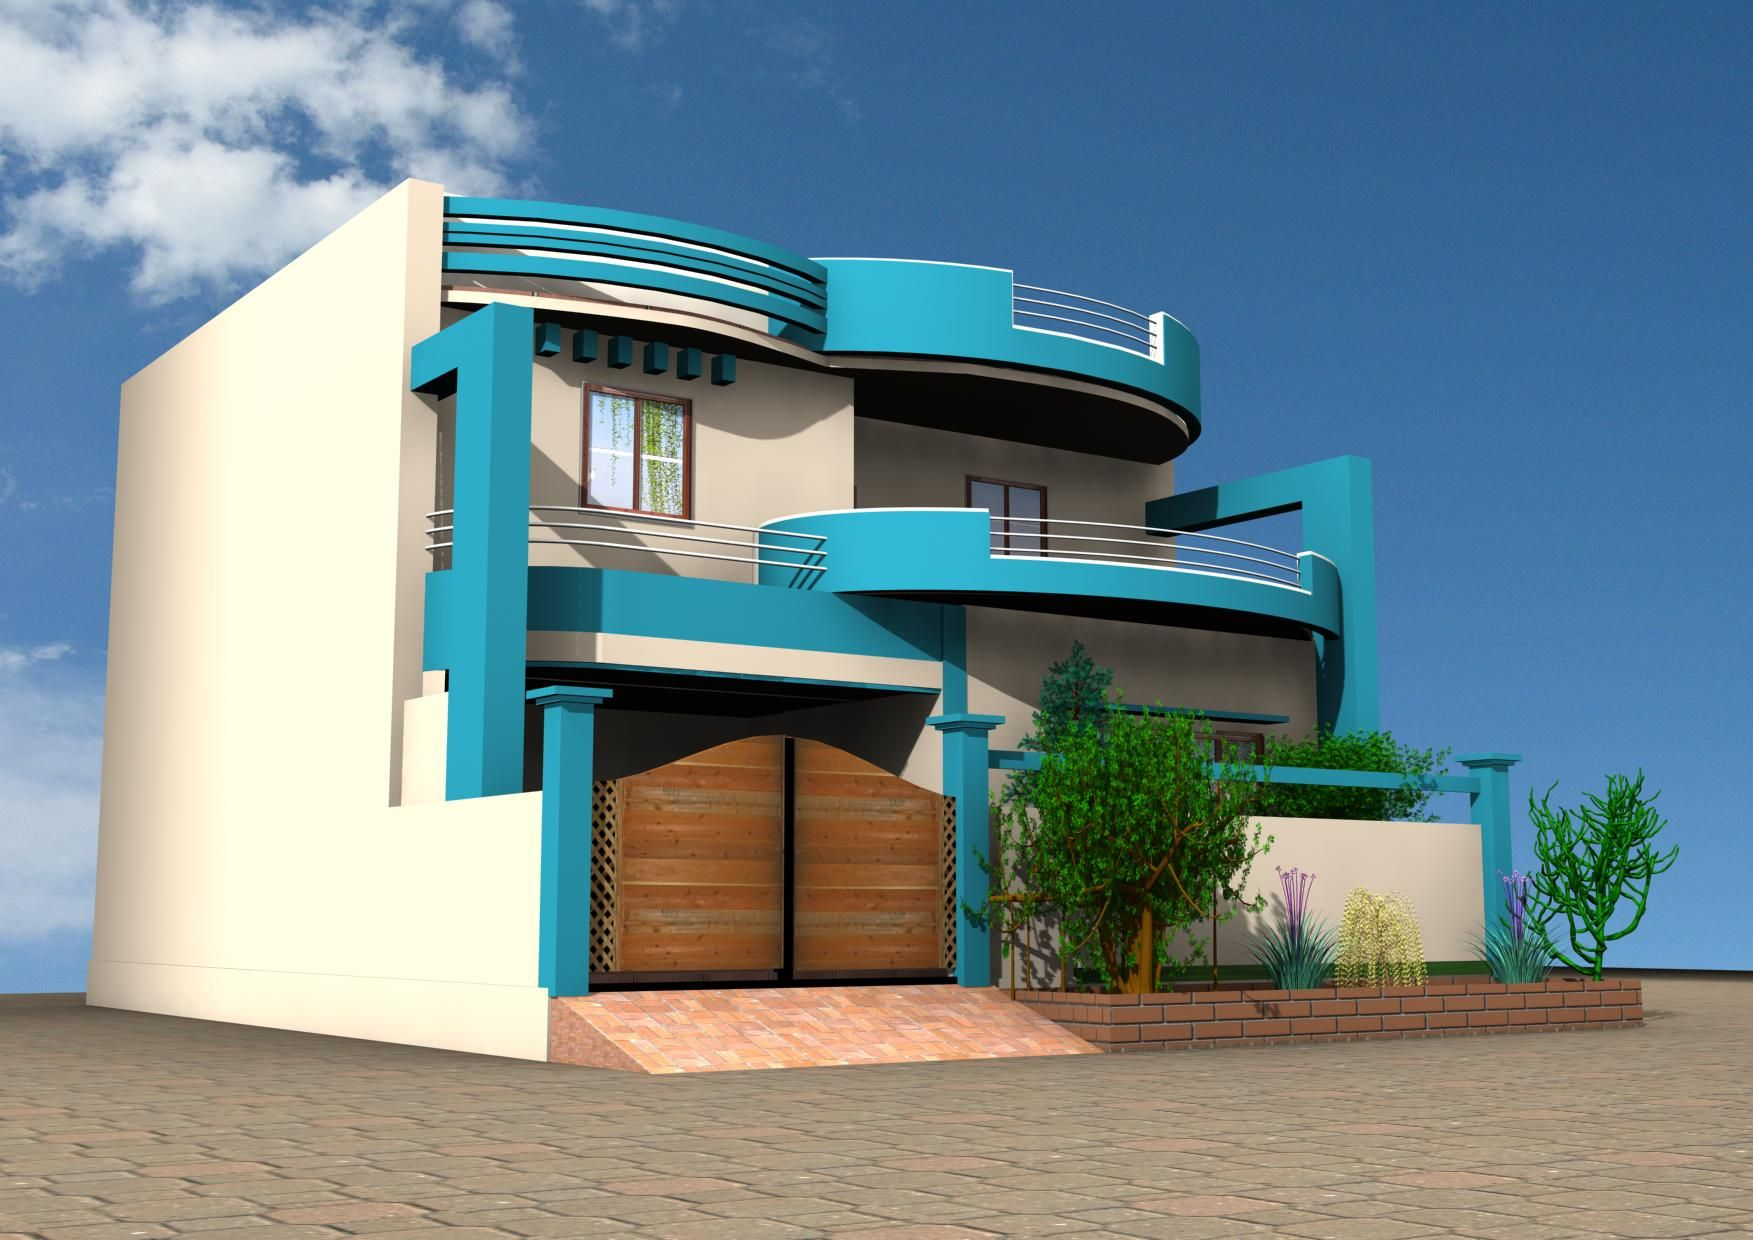 3d home design images hd 1080p for Latest house designs photos